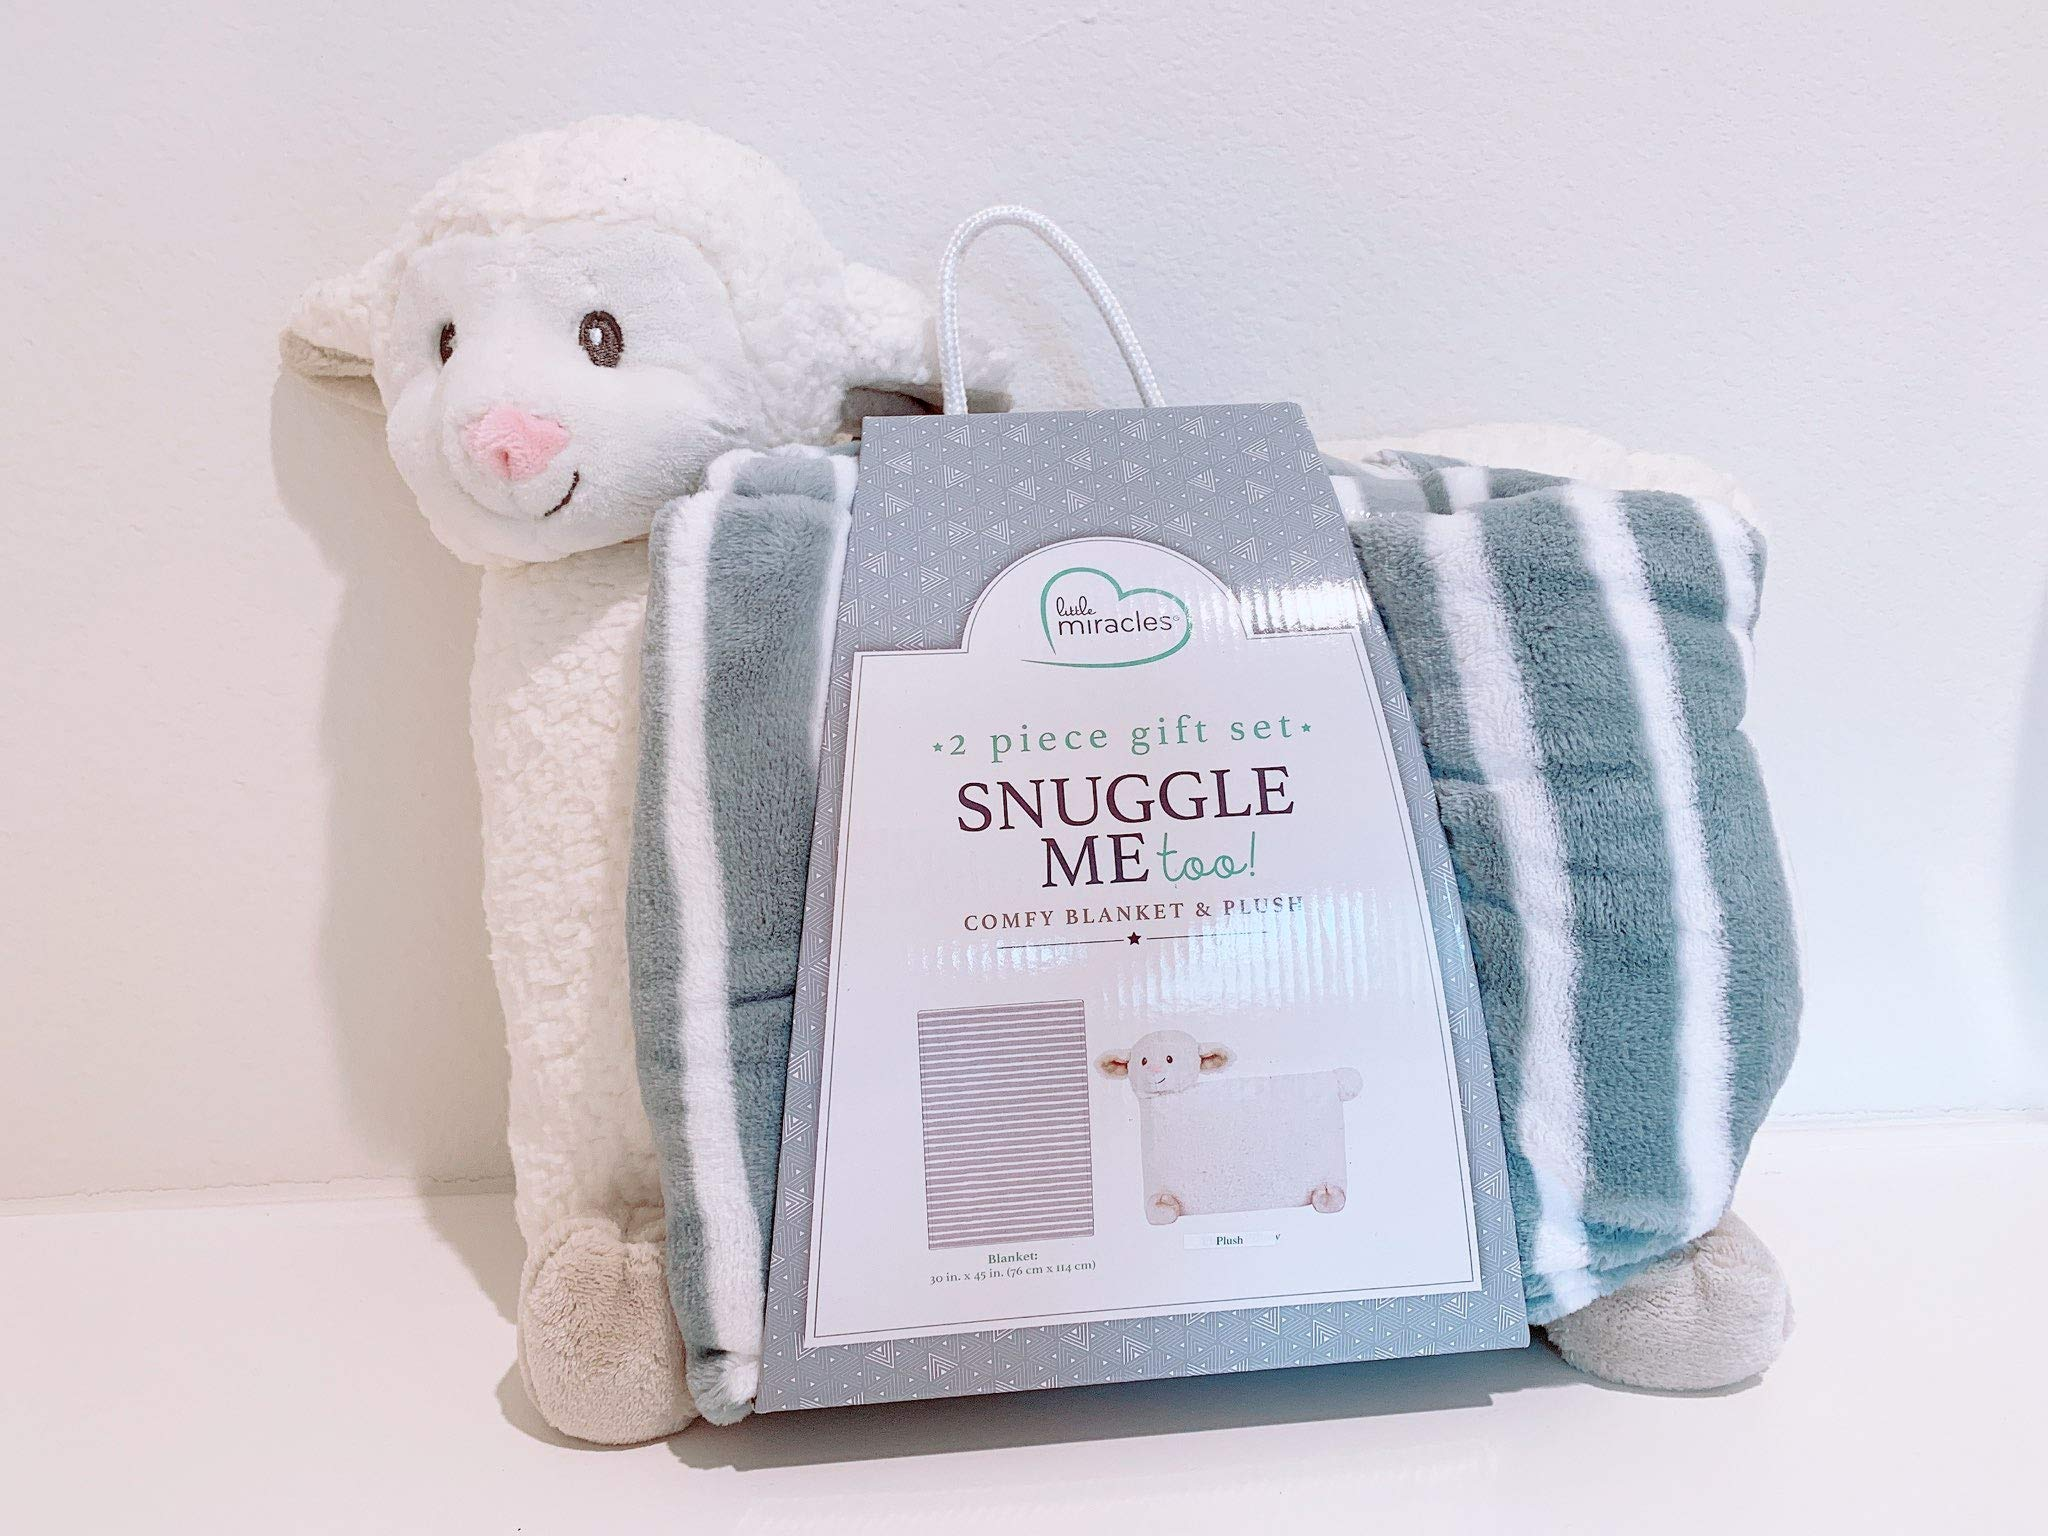 Little Miracles Snuggle Me Too! 2-Piece Comfy Blanket and Plush Gift Set - Sheep